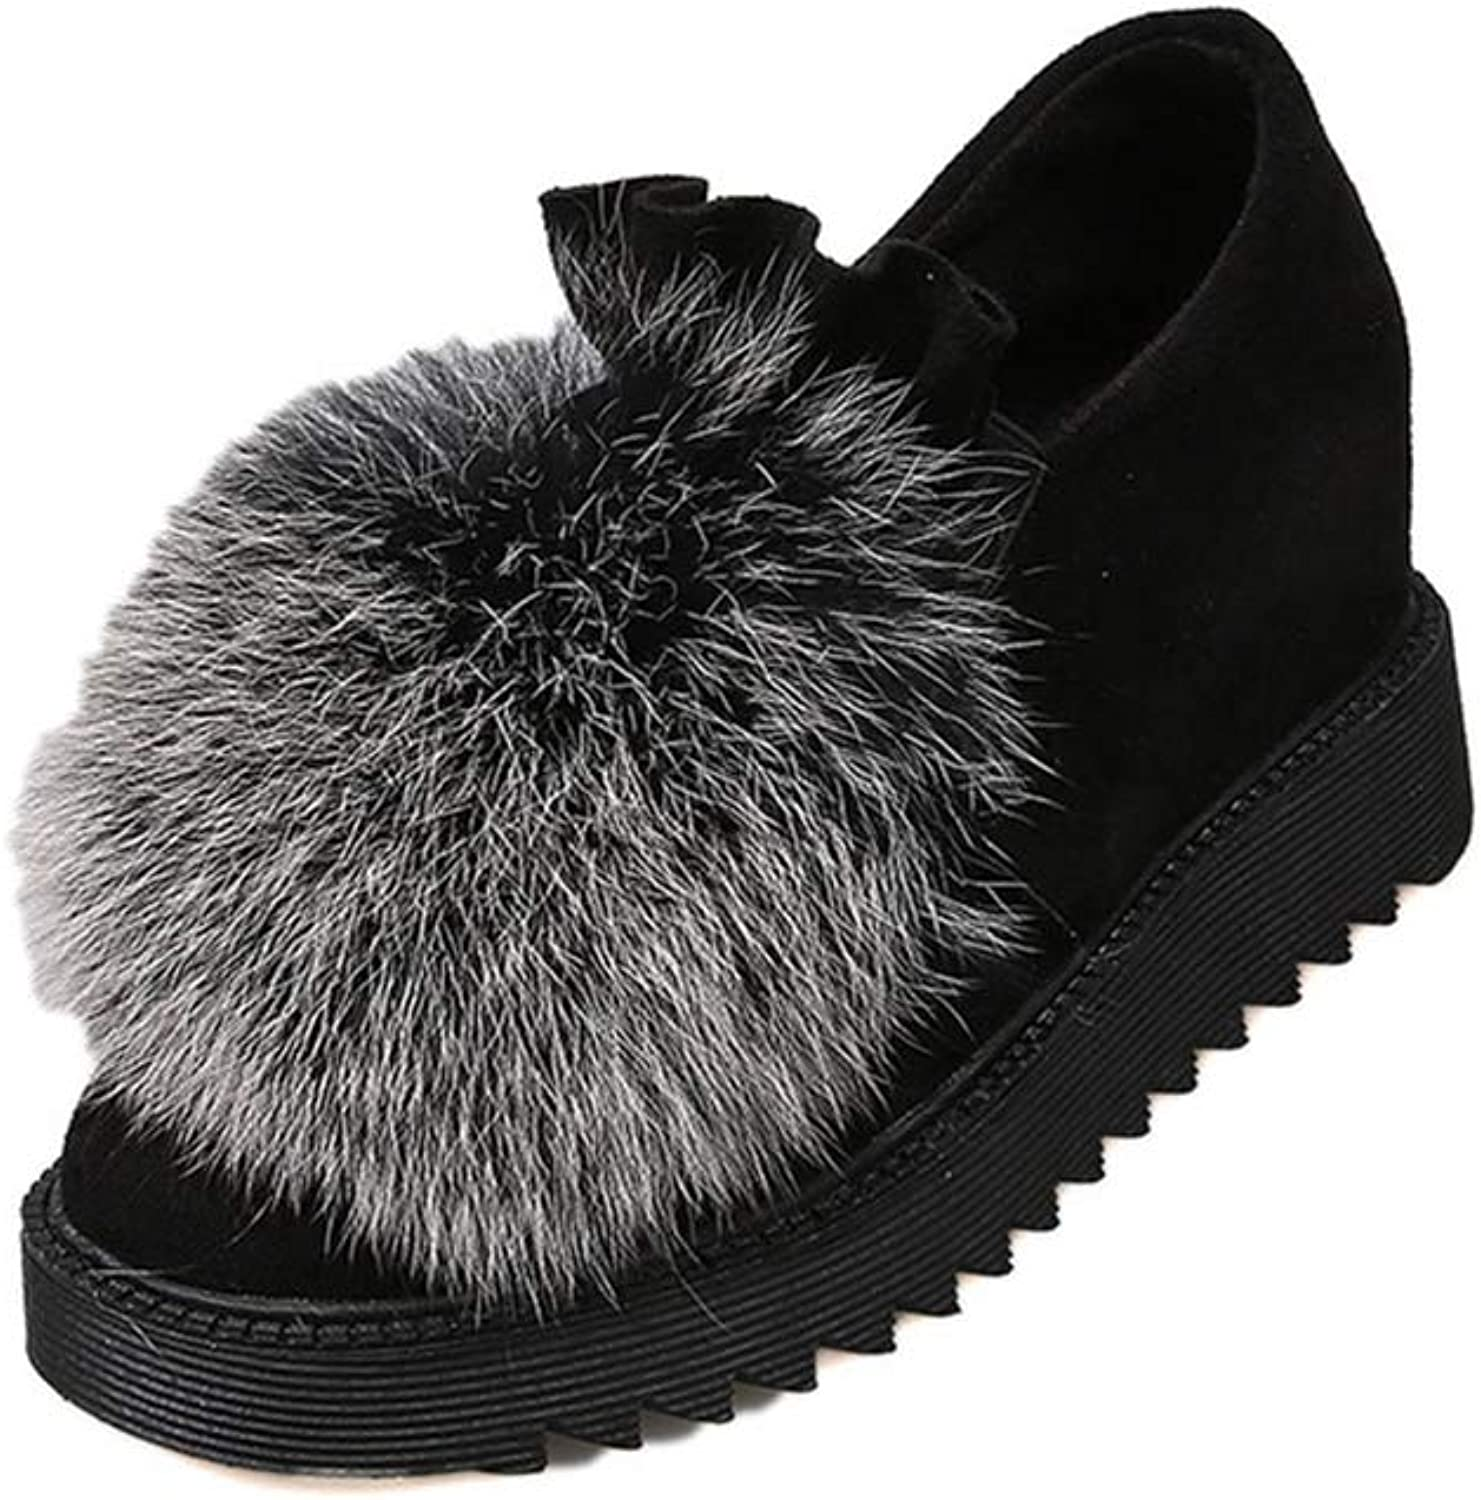 Women Fluffy Fur Loafer Flock Ruffles Round Toe Casual Concise Slip on Flats shoes